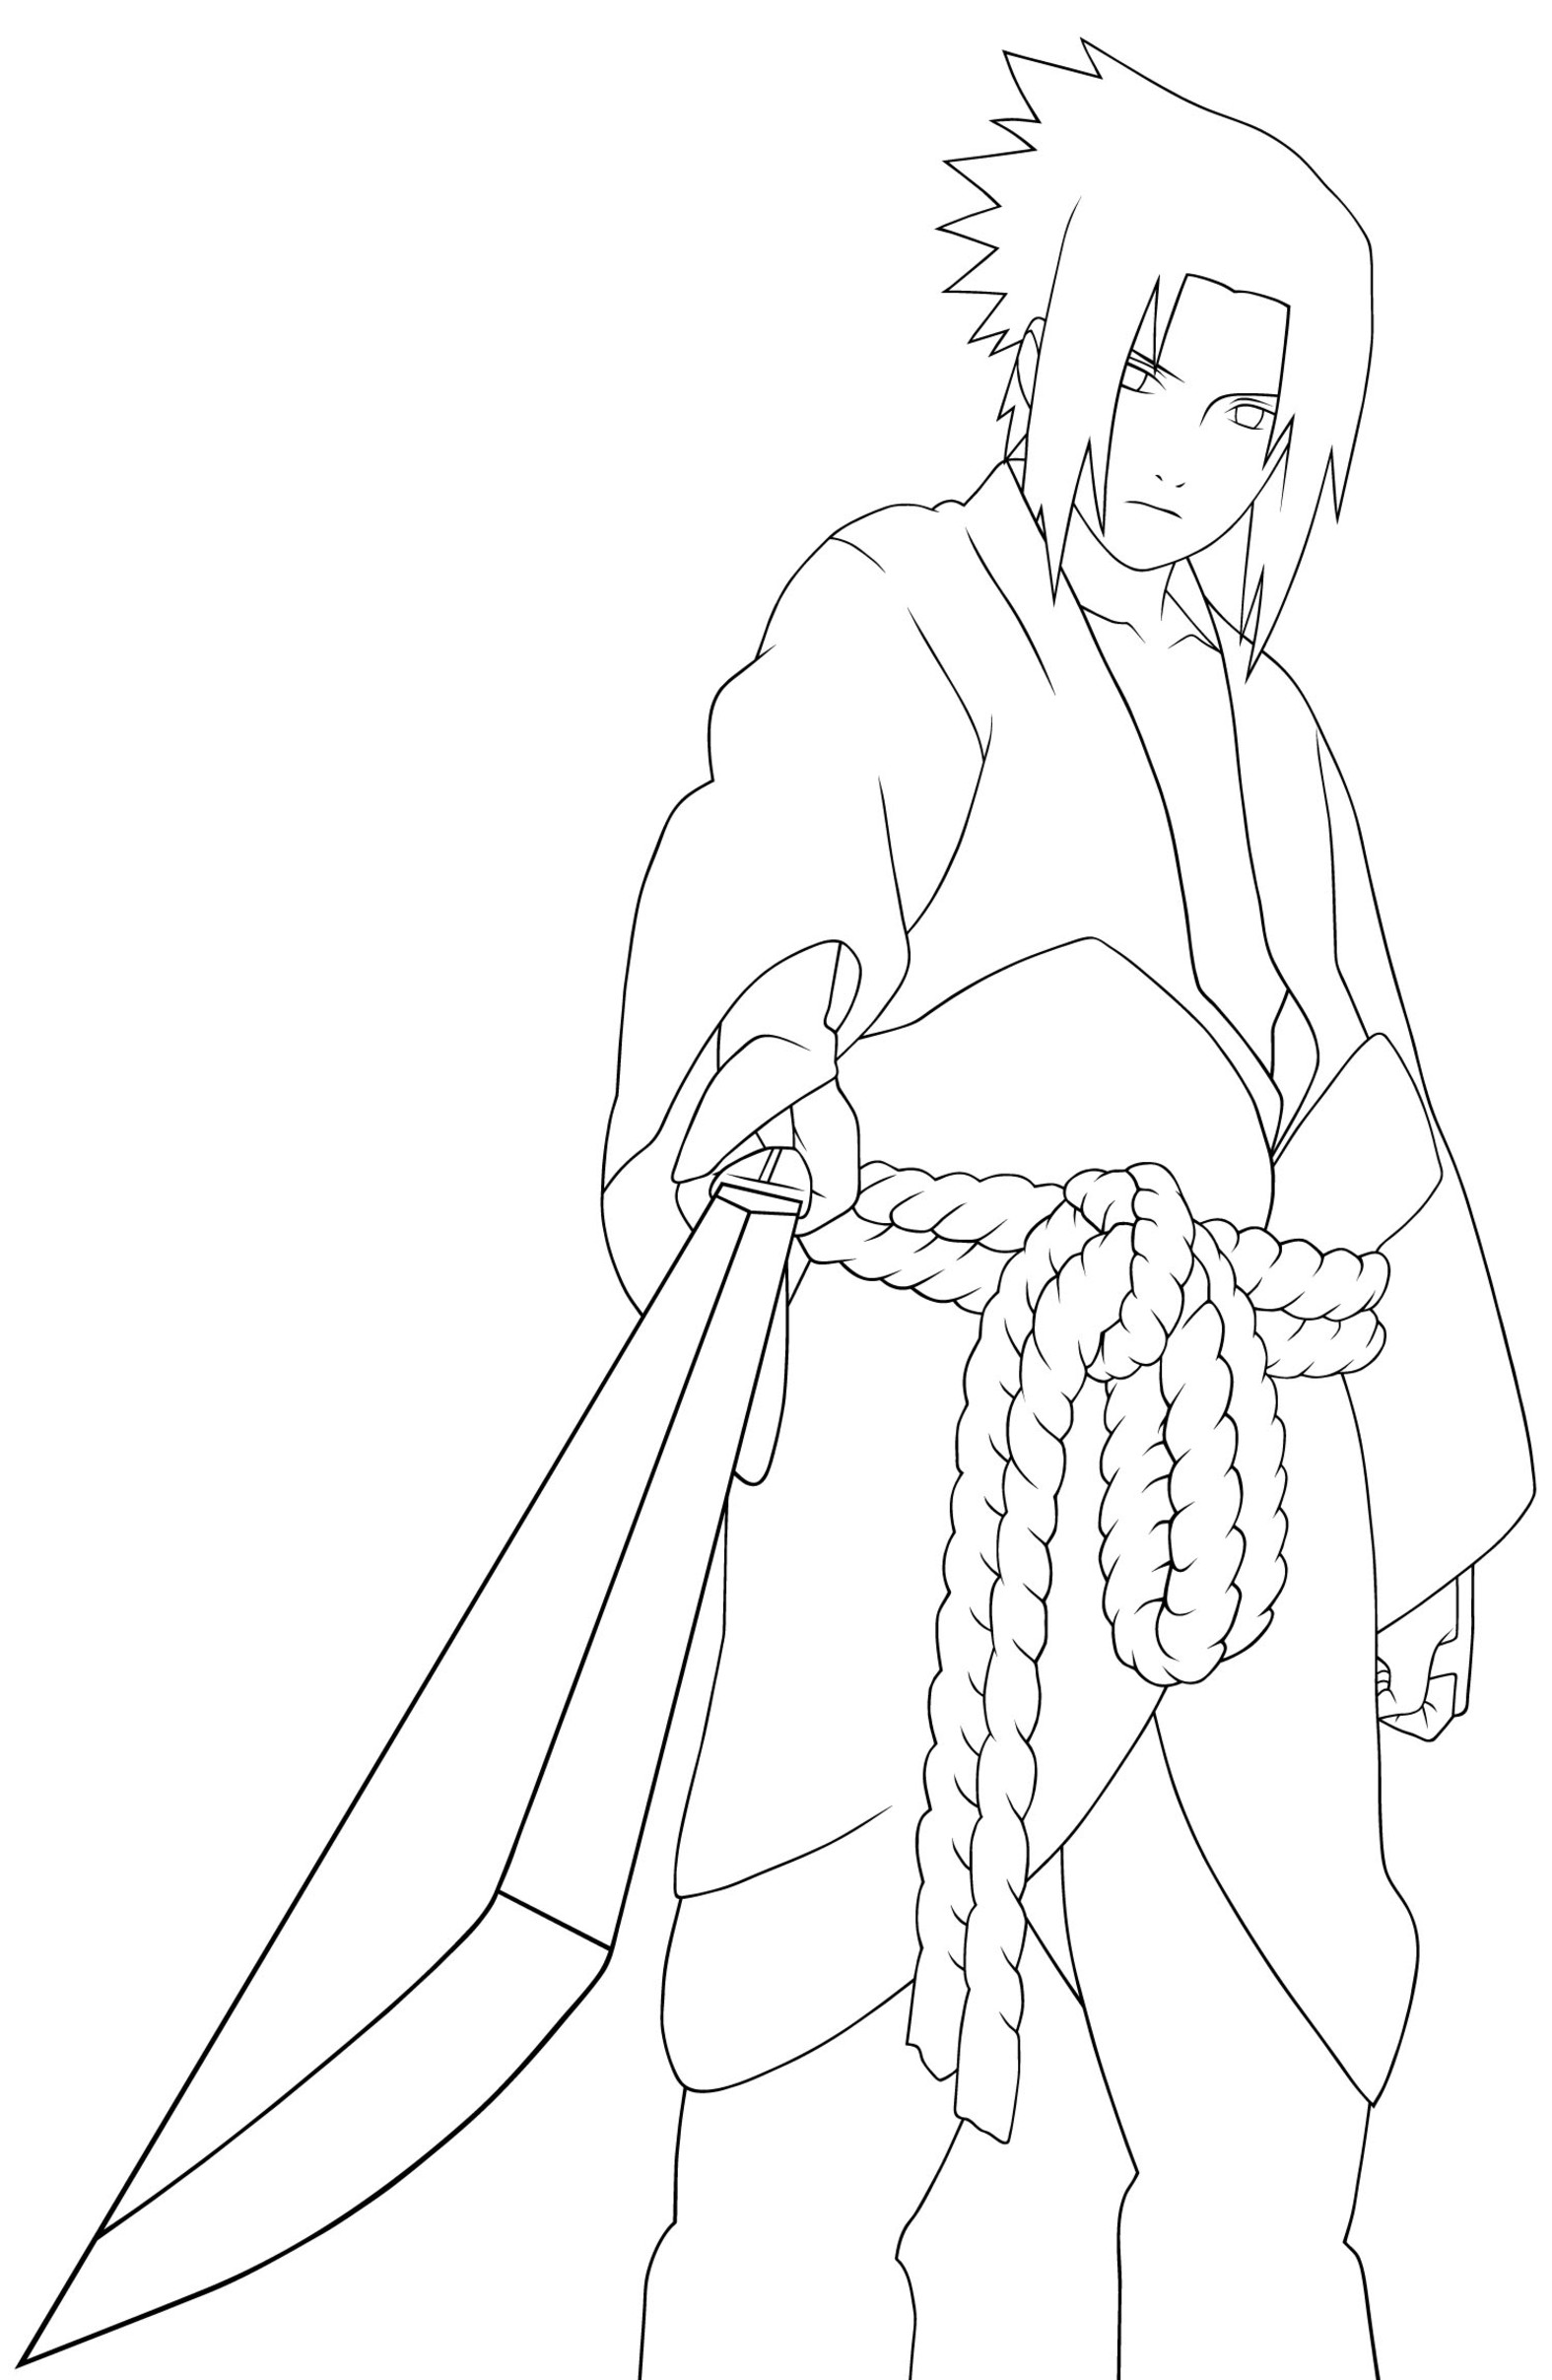 naruto coloring pages naruto shippuden coloring pages to download and print for free pages naruto coloring